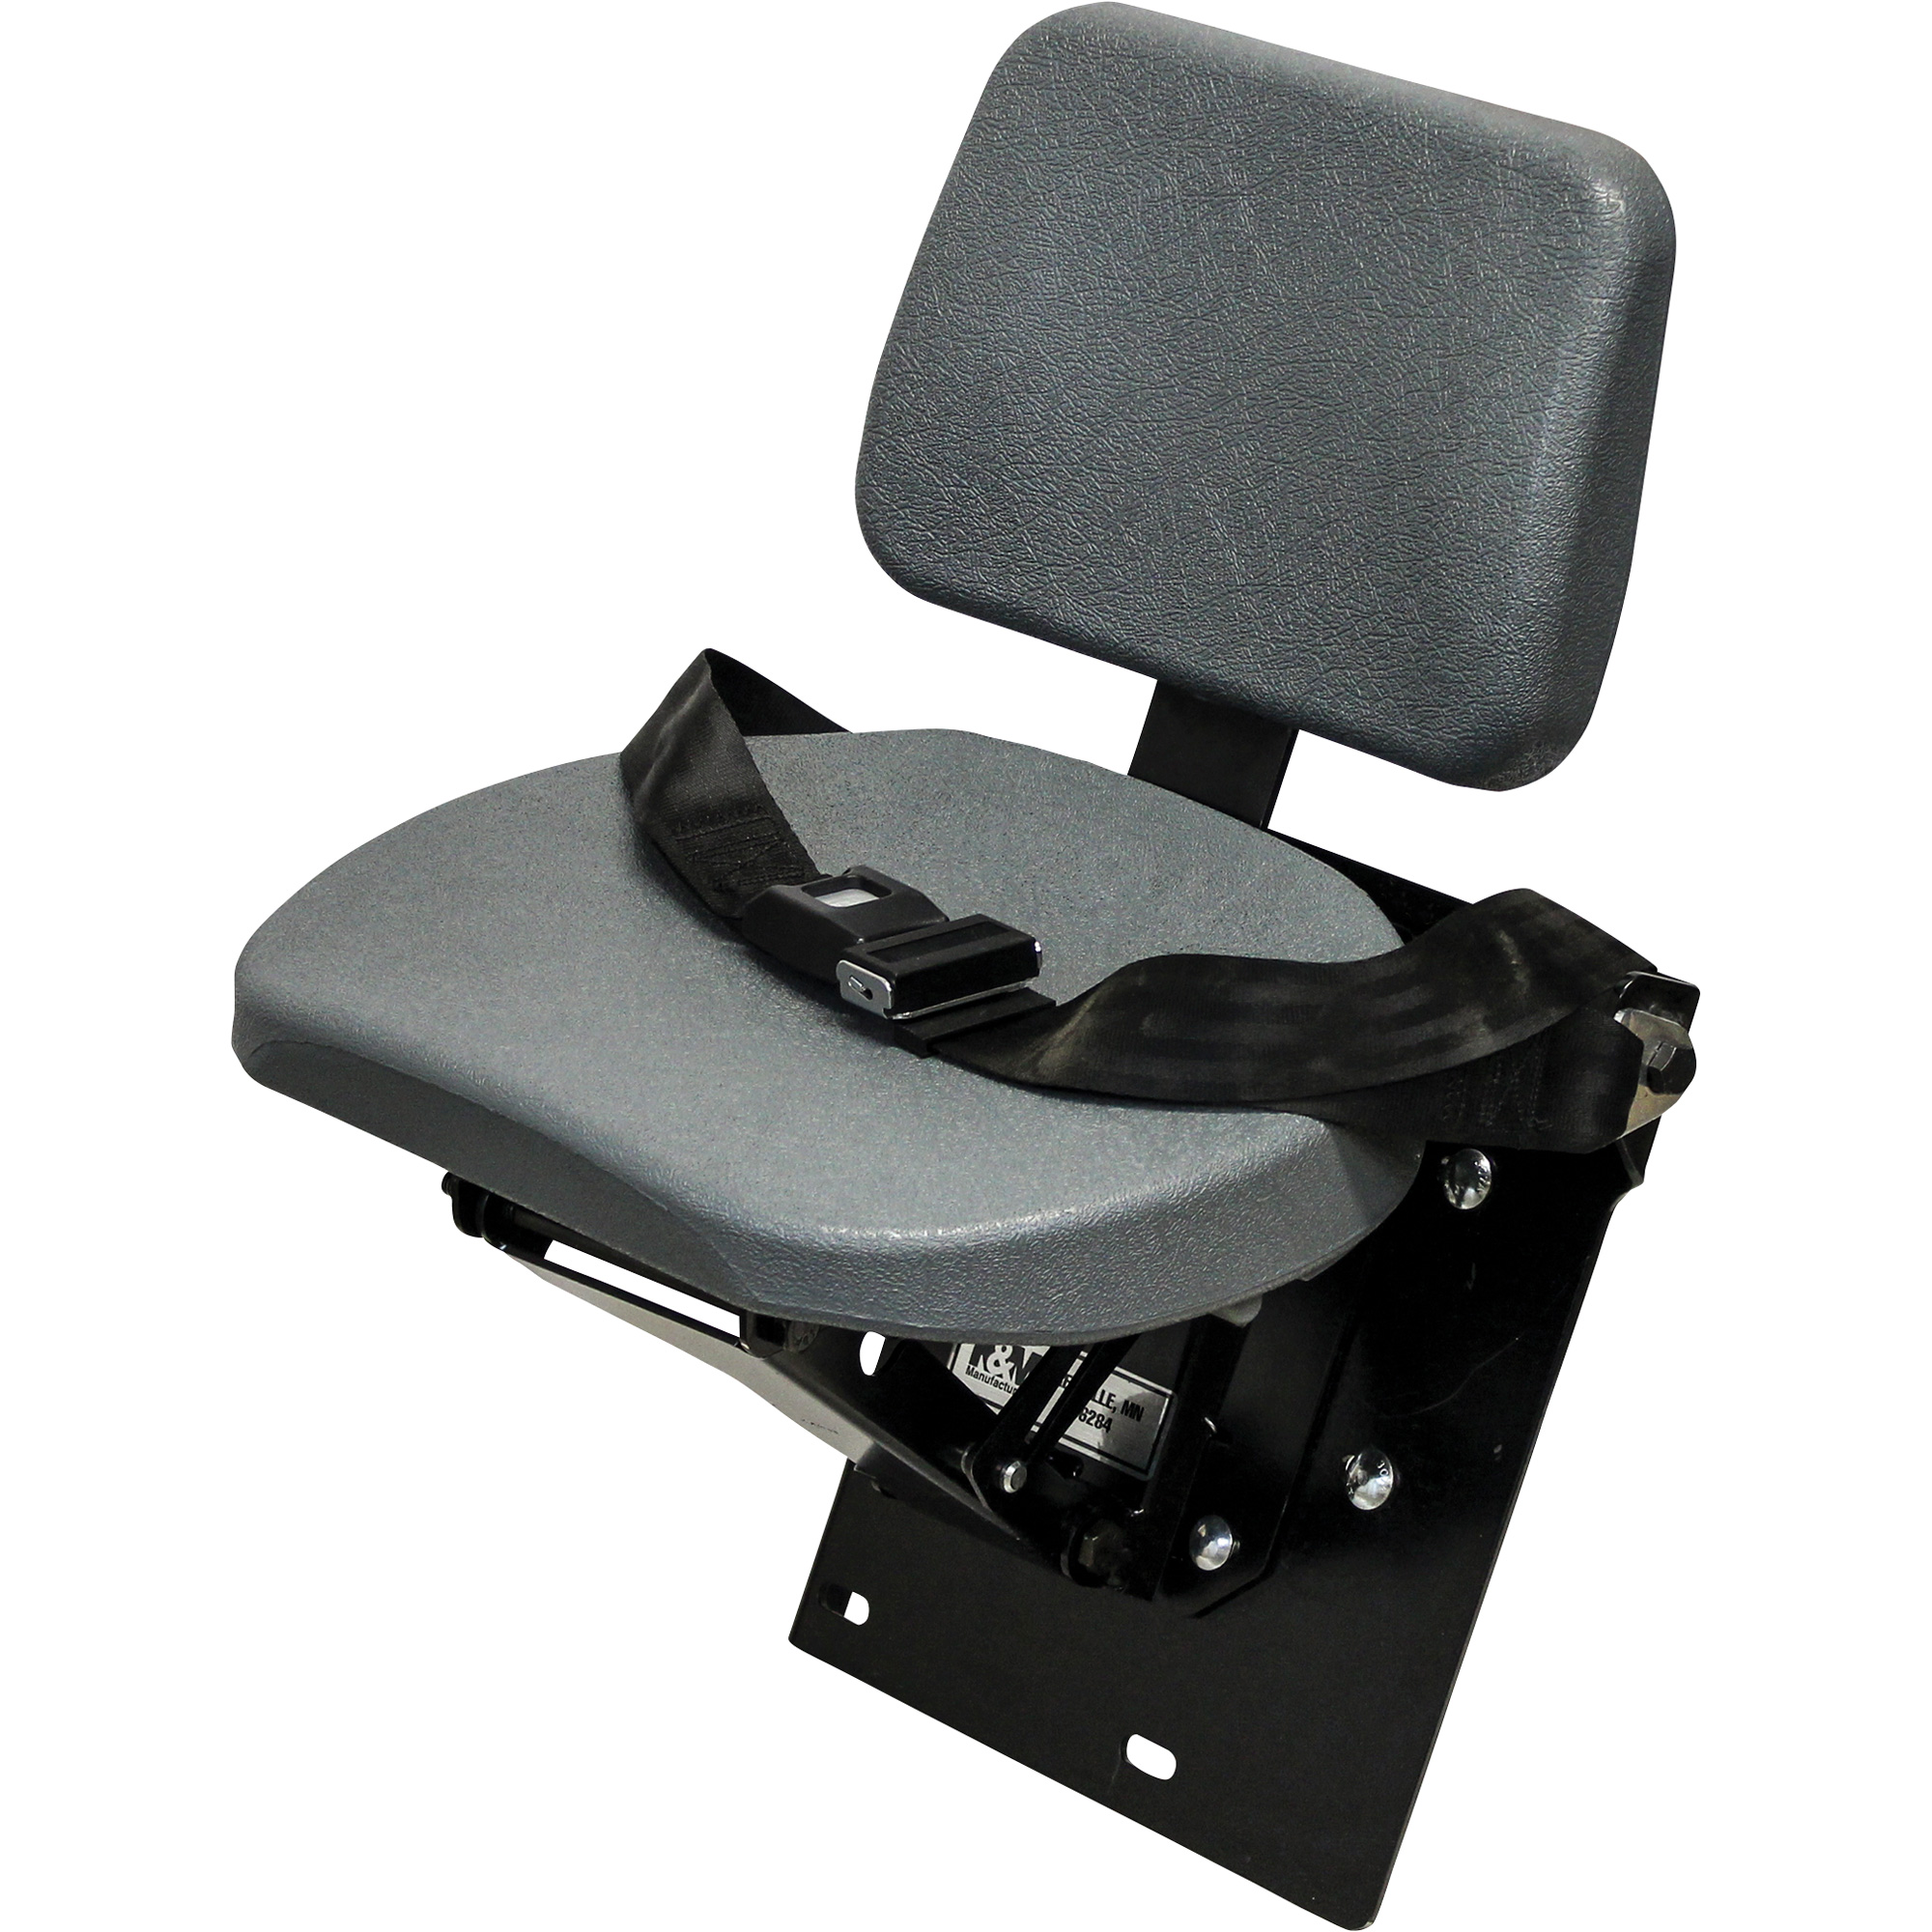 K And M Tractor Seats : K m buddy seat instructional tractor — model